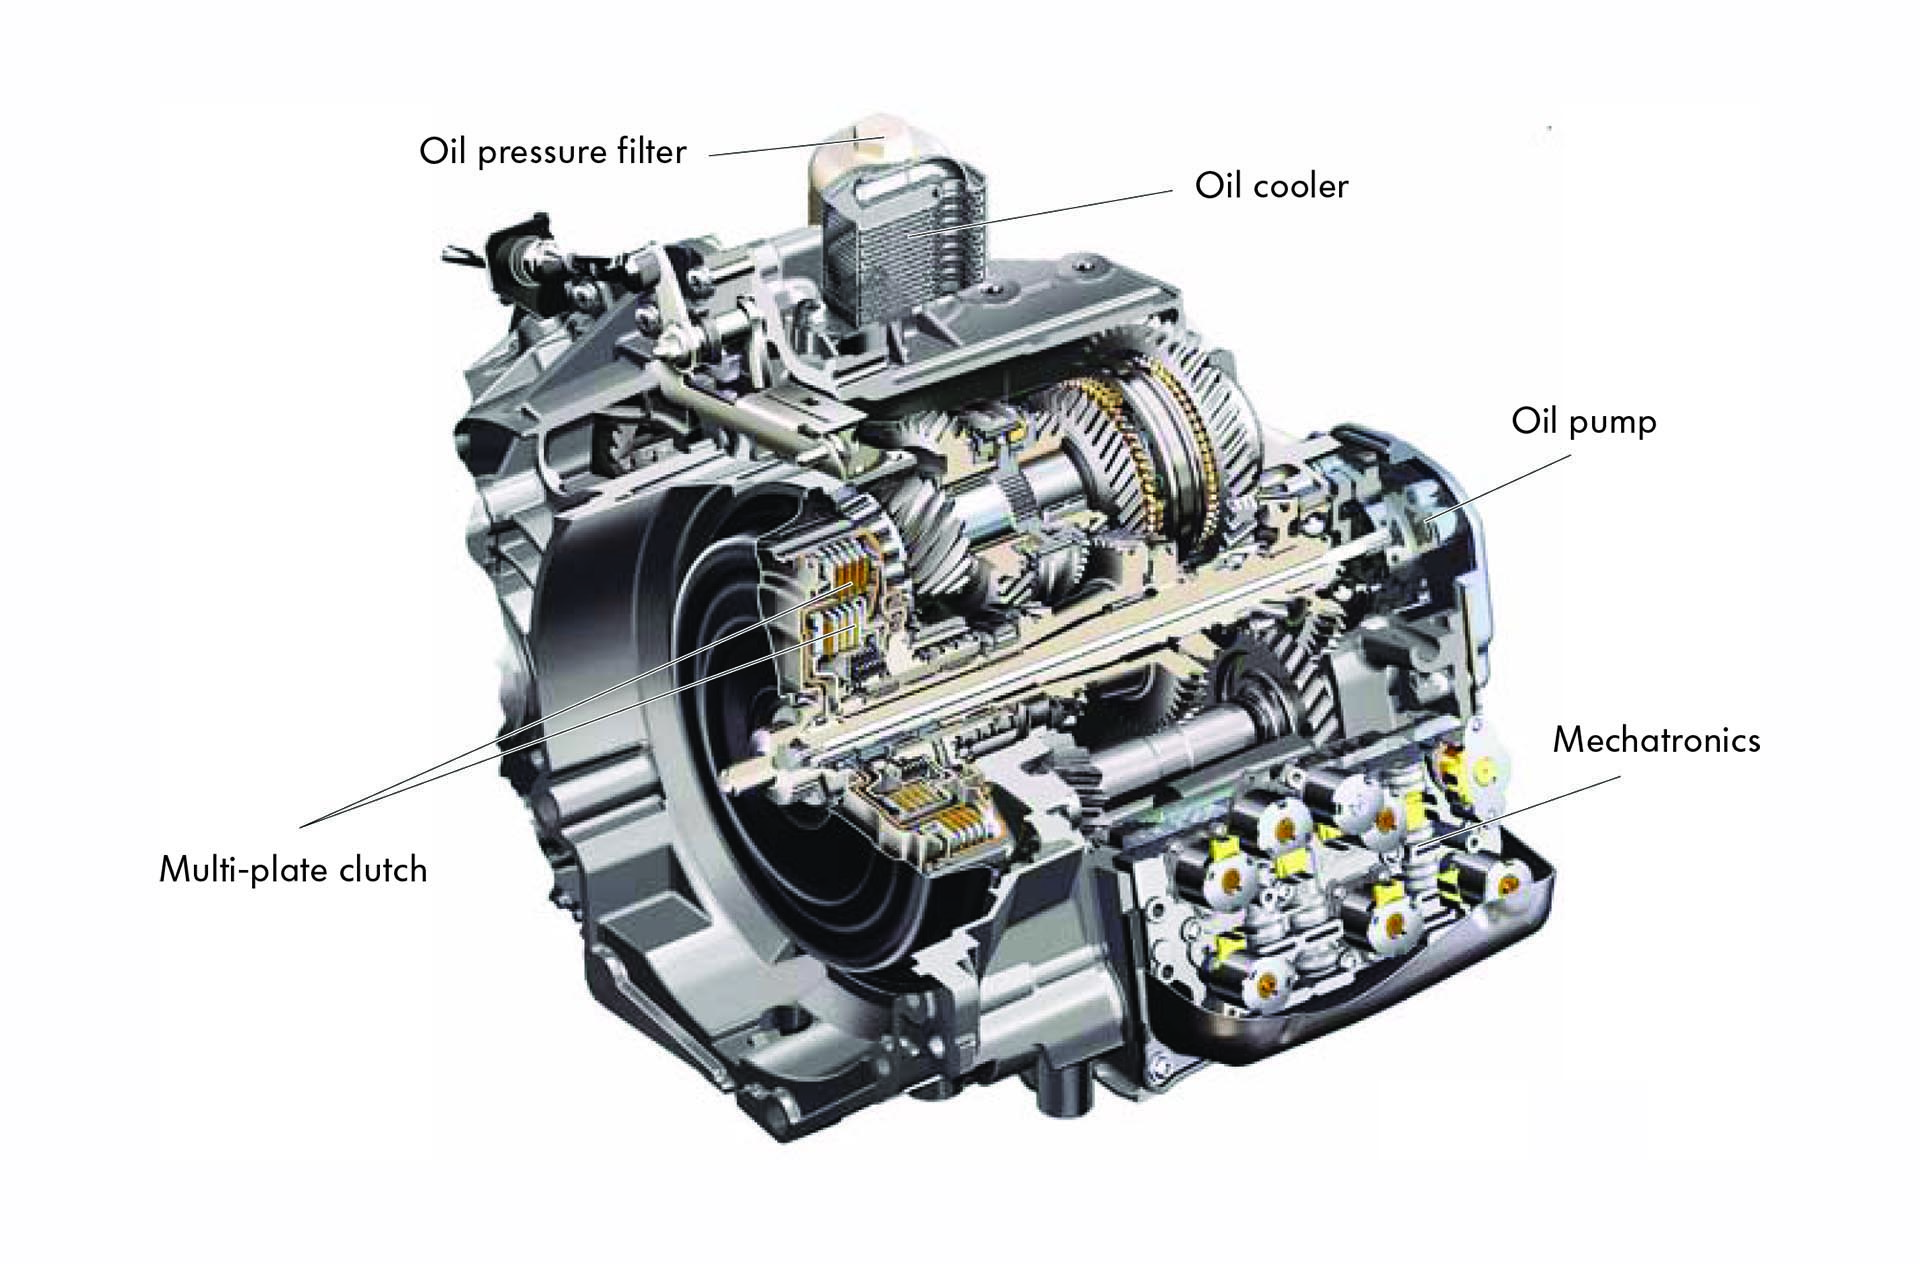 07_VW Audi DSG S Tronic DCT transmission technical drawing